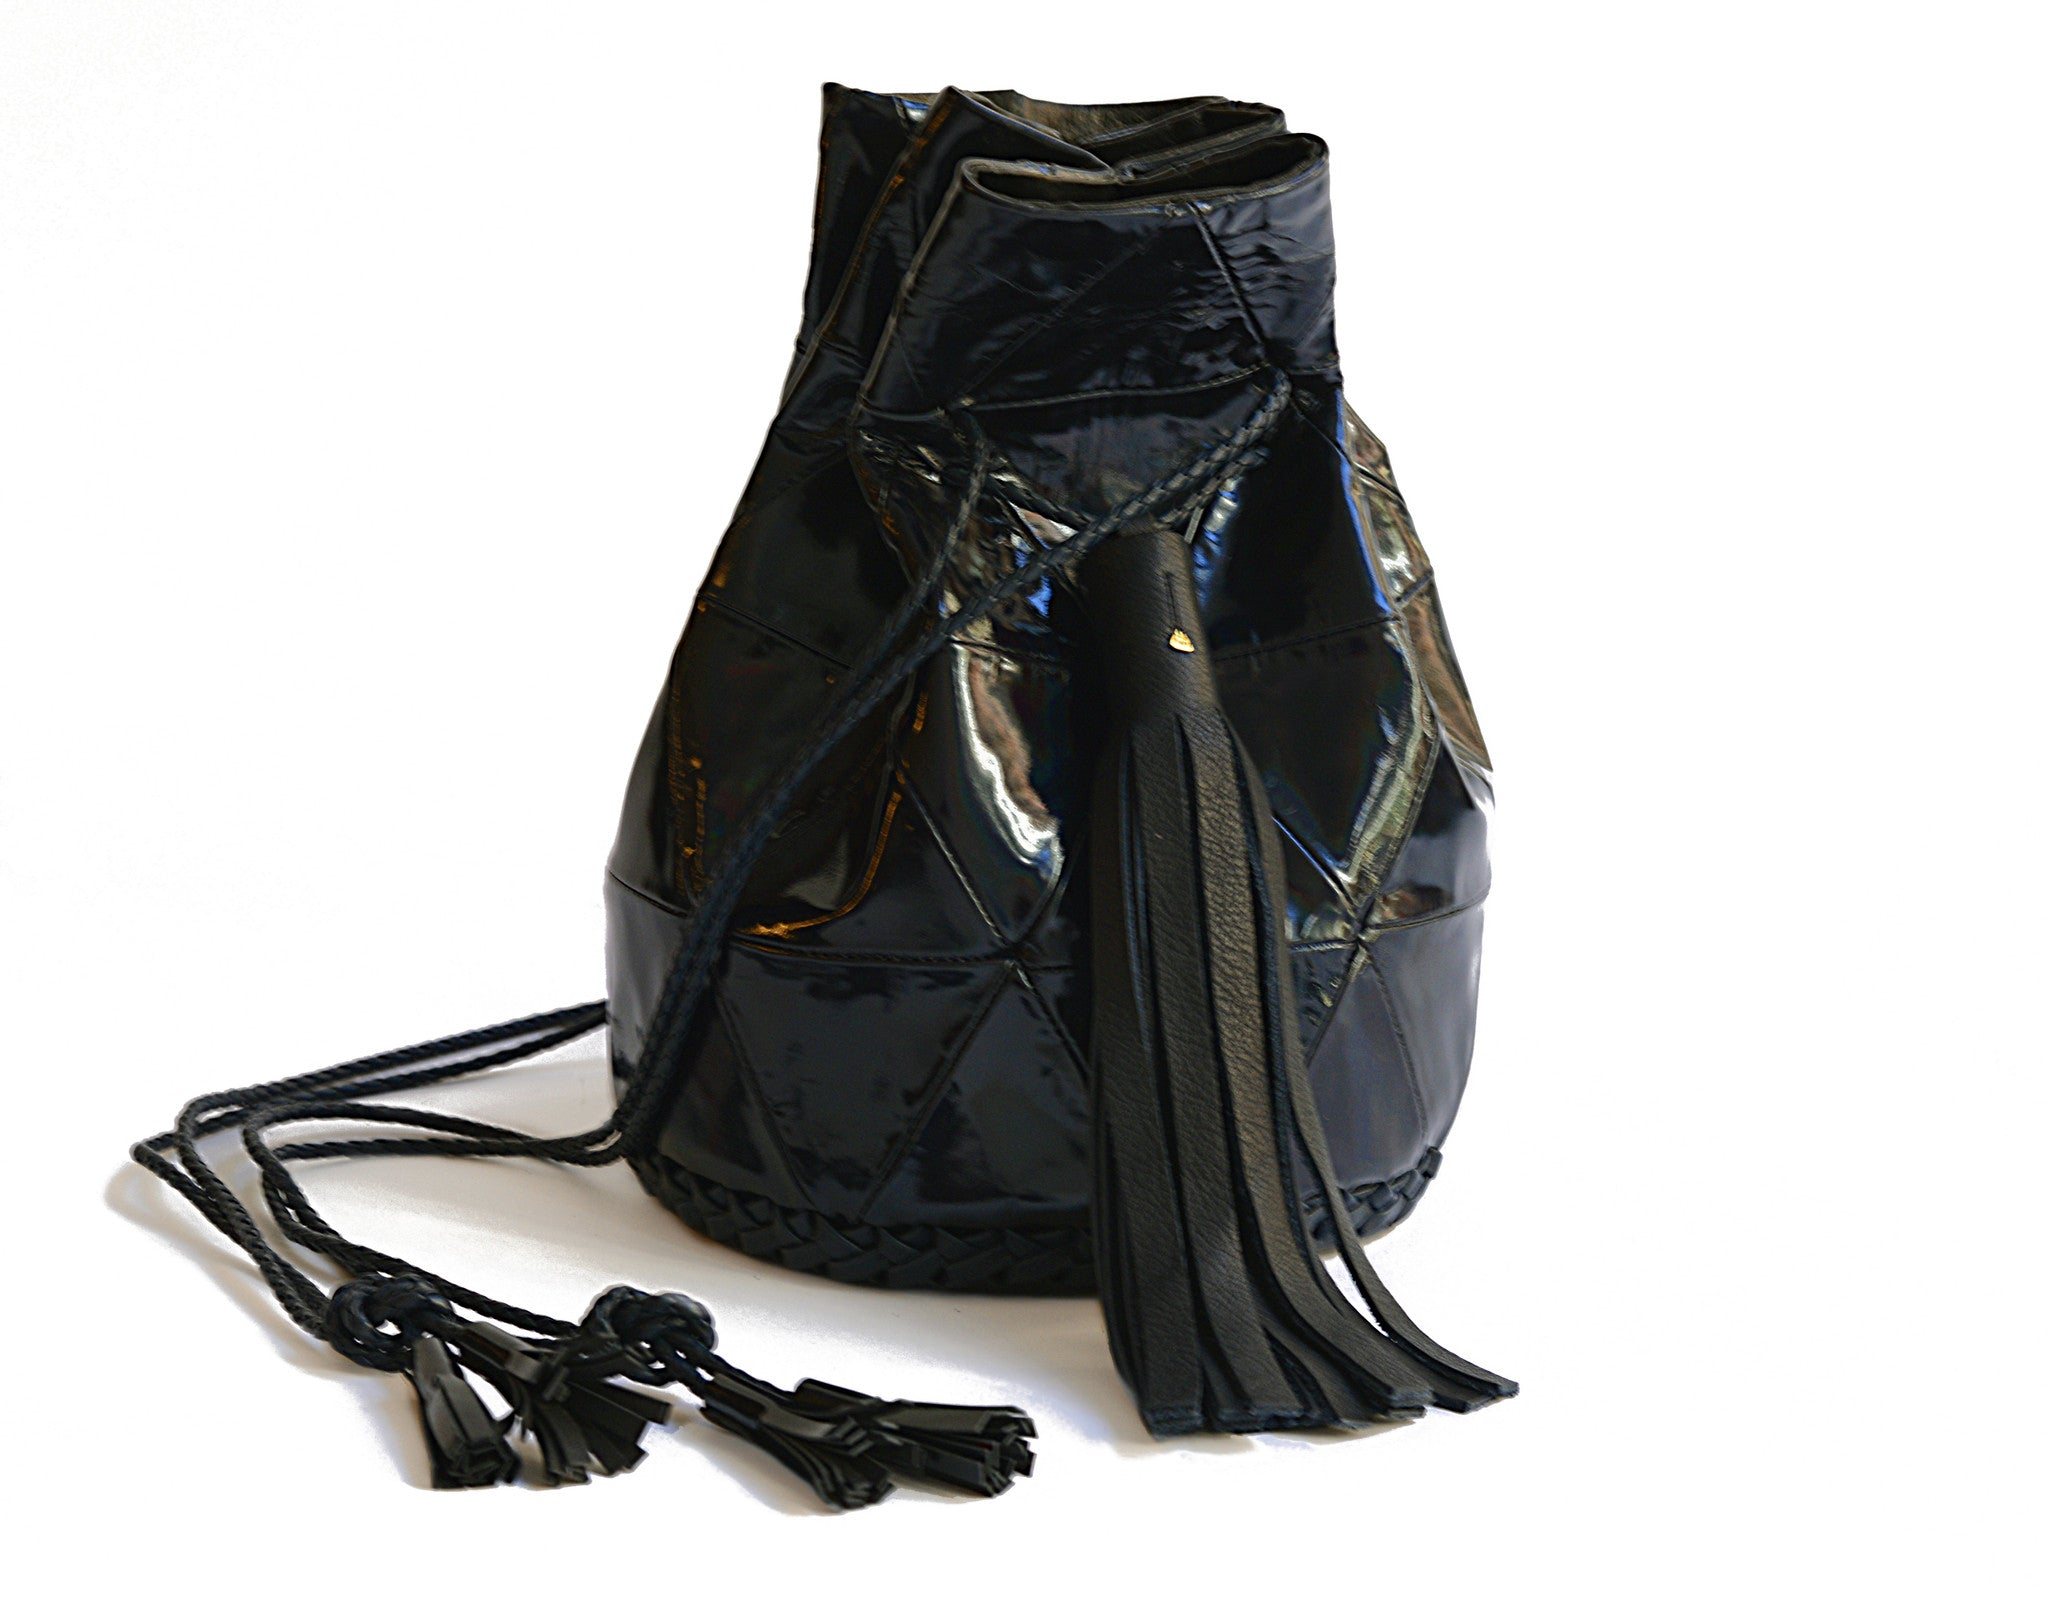 Black Rainbow Mirror Patent Leather Triangle Patchwork Bullet Bag Wendy Nichol Handbag Purse Designer Handmade in NYC Bucket Bag